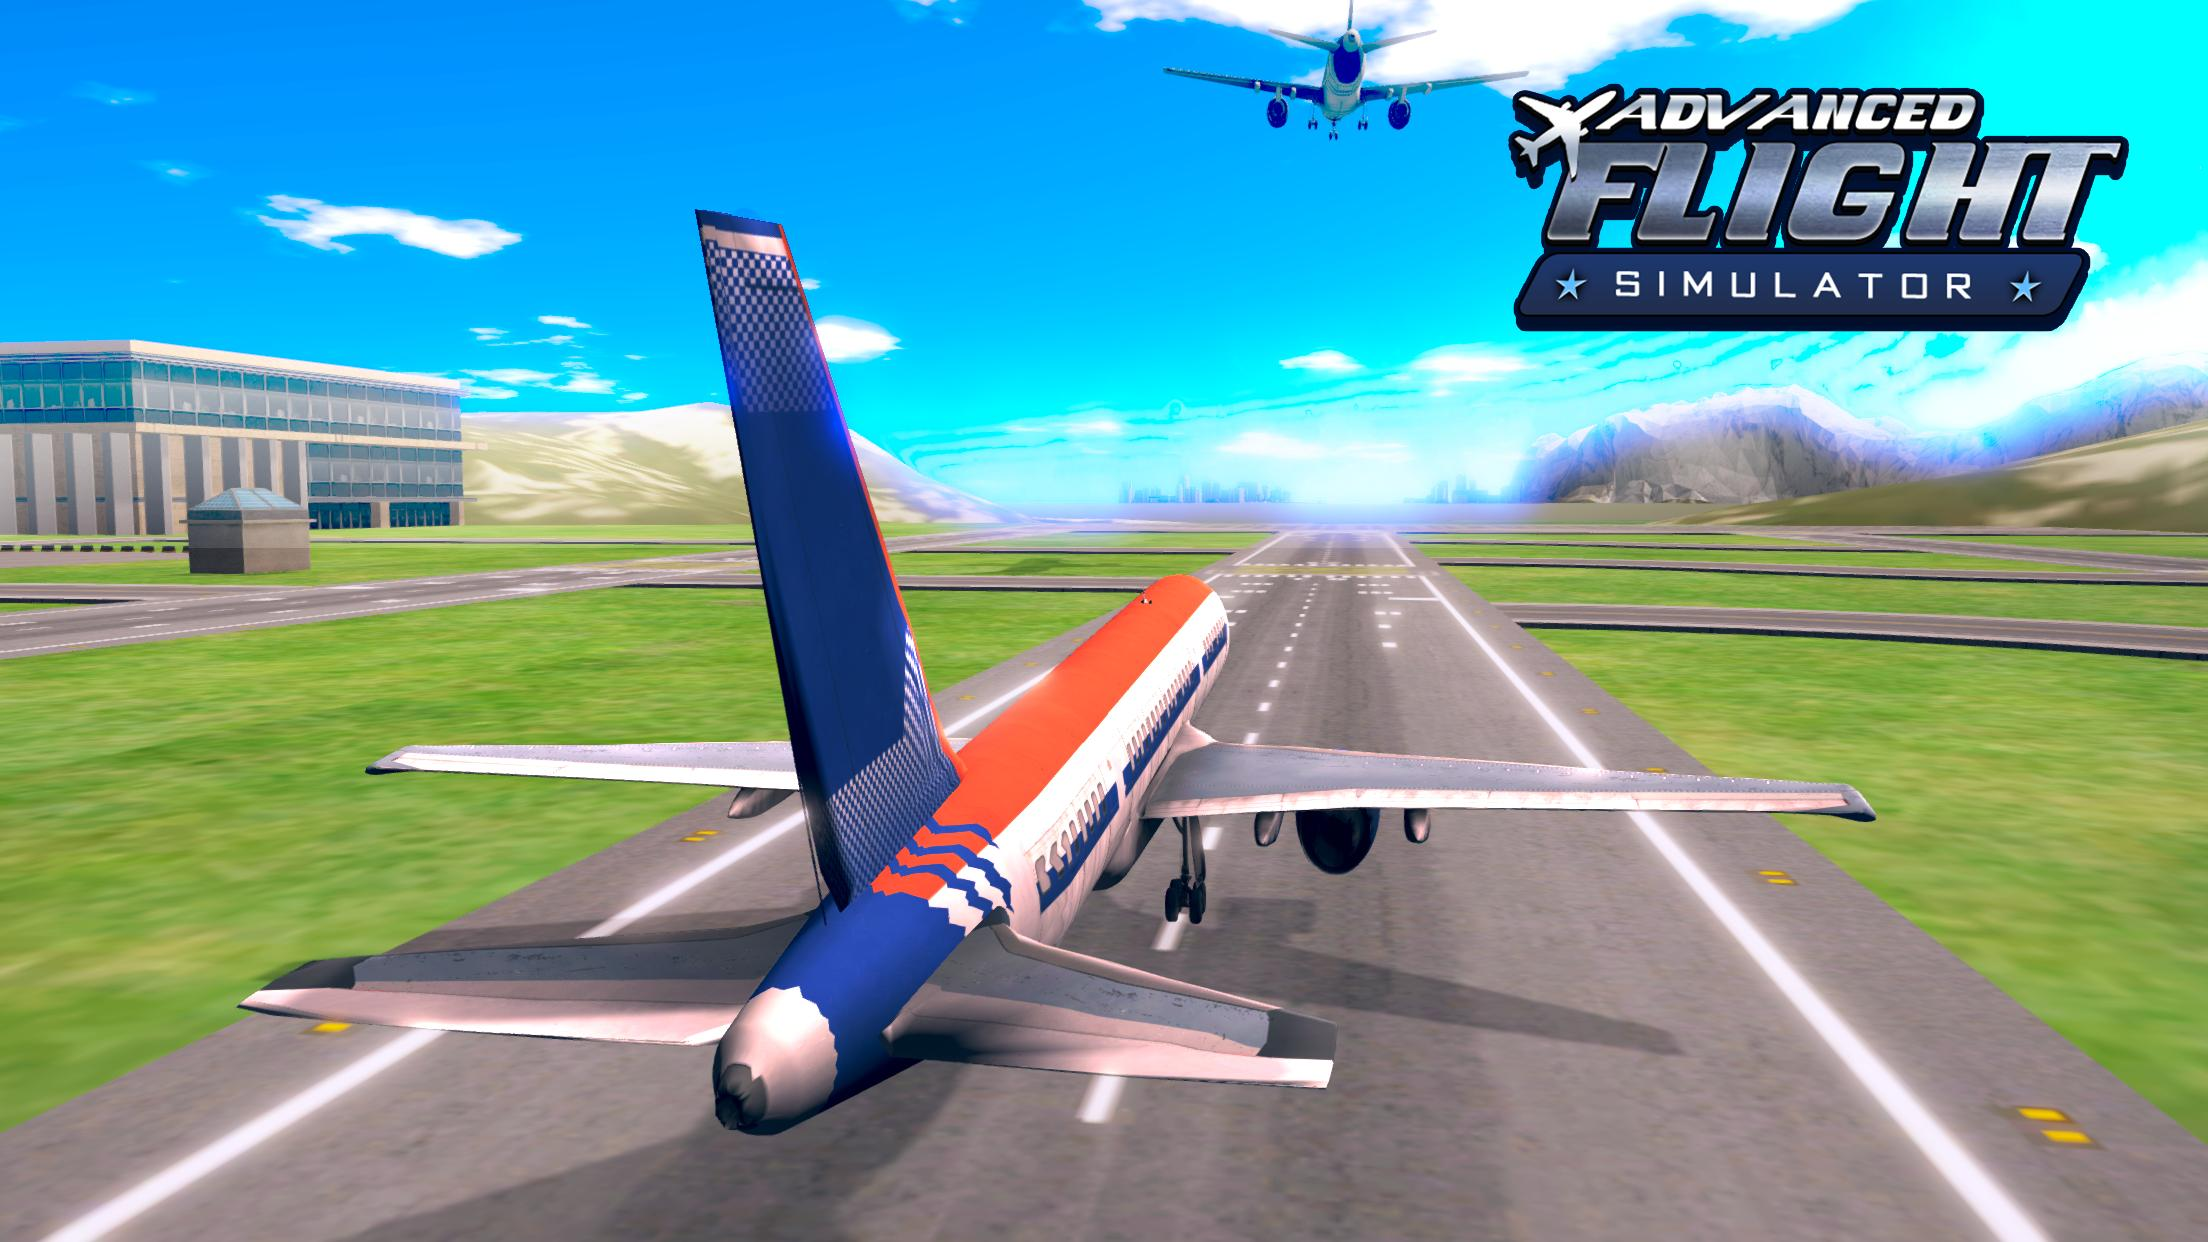 Airplane Real Flight Simulator 2020 Plane Games 5.4 Screenshot 15